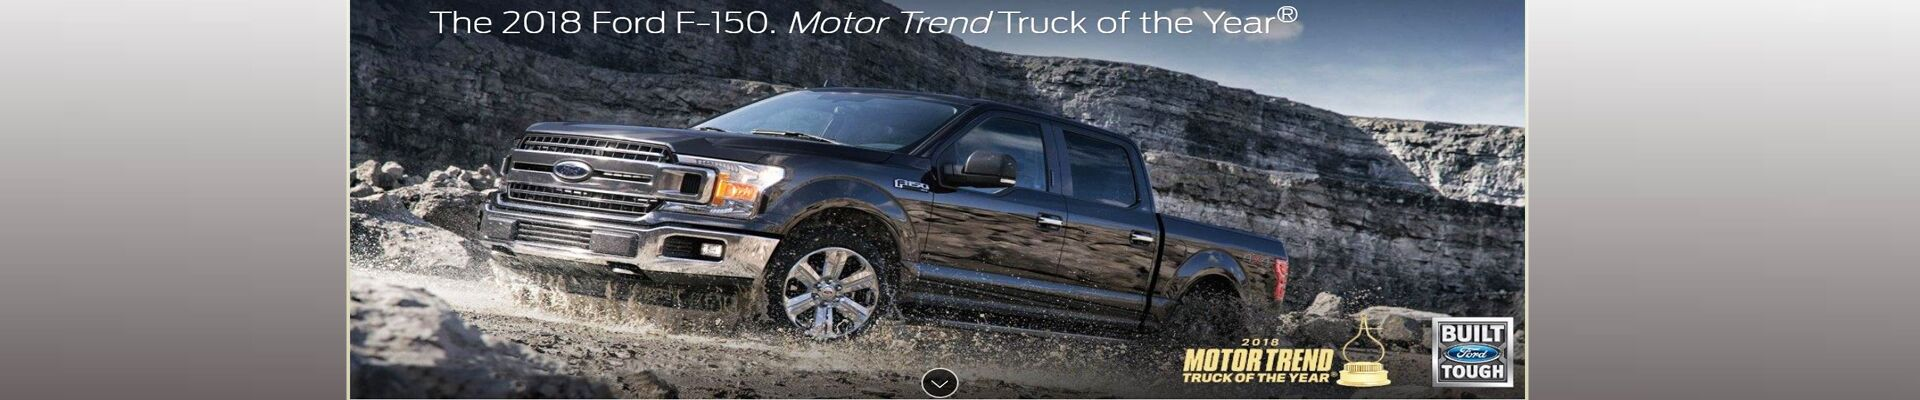 F150 Truck of the Year